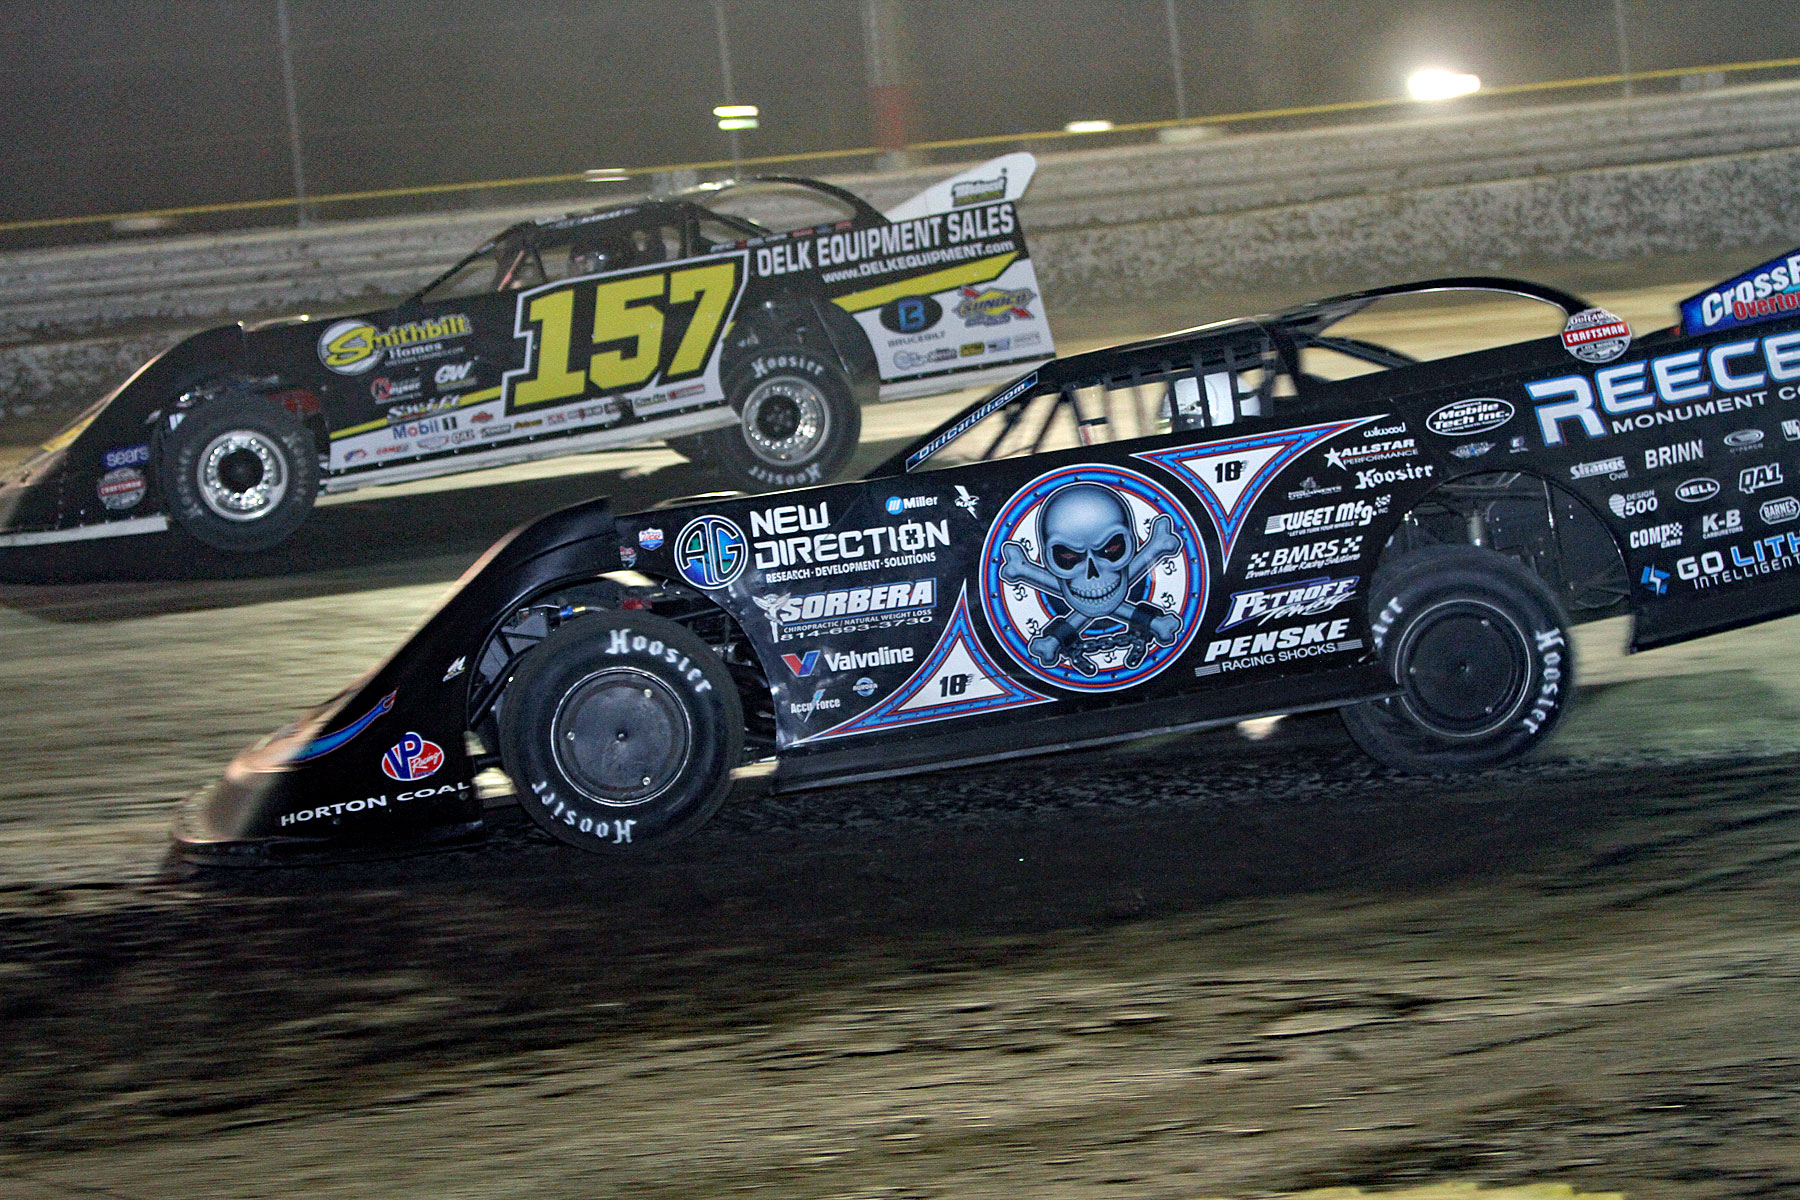 Jim Denhamer's photos of the DIRTcar Nationals from Volusia Speedway